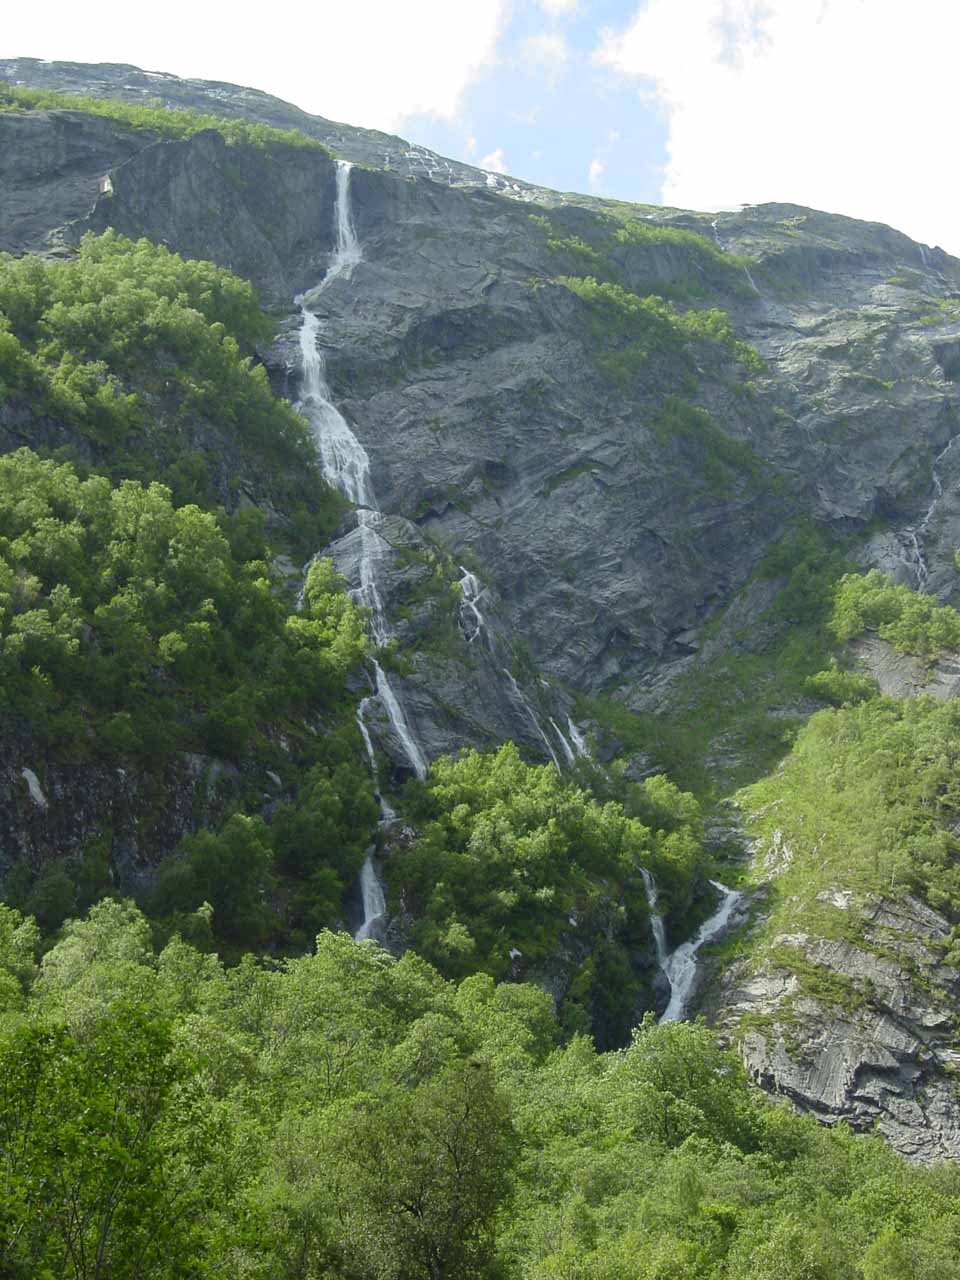 Another look at the waterfall on Sandgrova or Bruåa